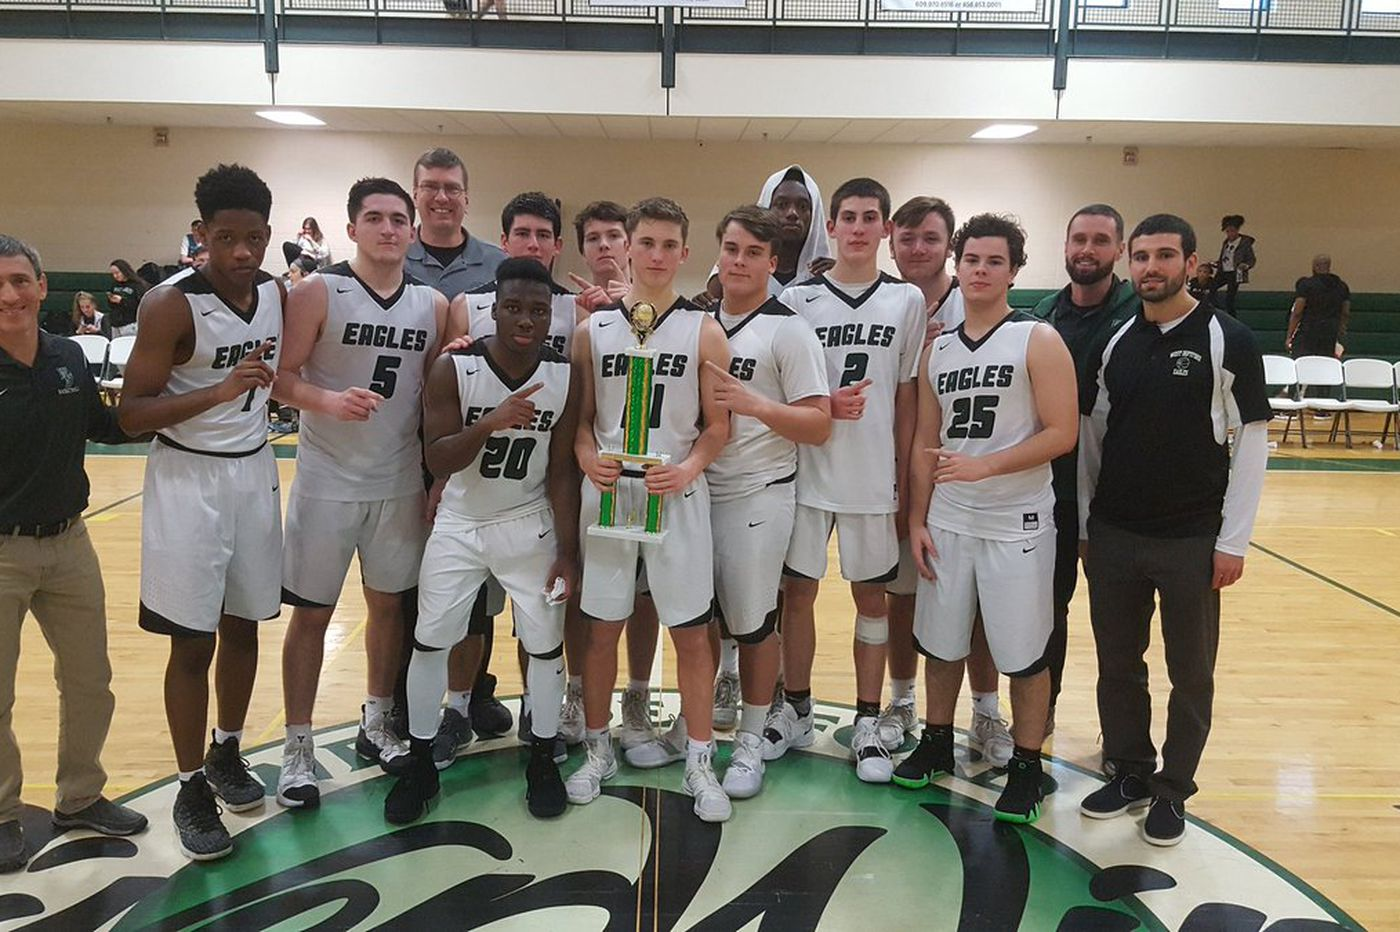 Thursday's South Jersey roundup: Elijah Malloy's double-double powers the West Deptford boys' basketball past Woodbury